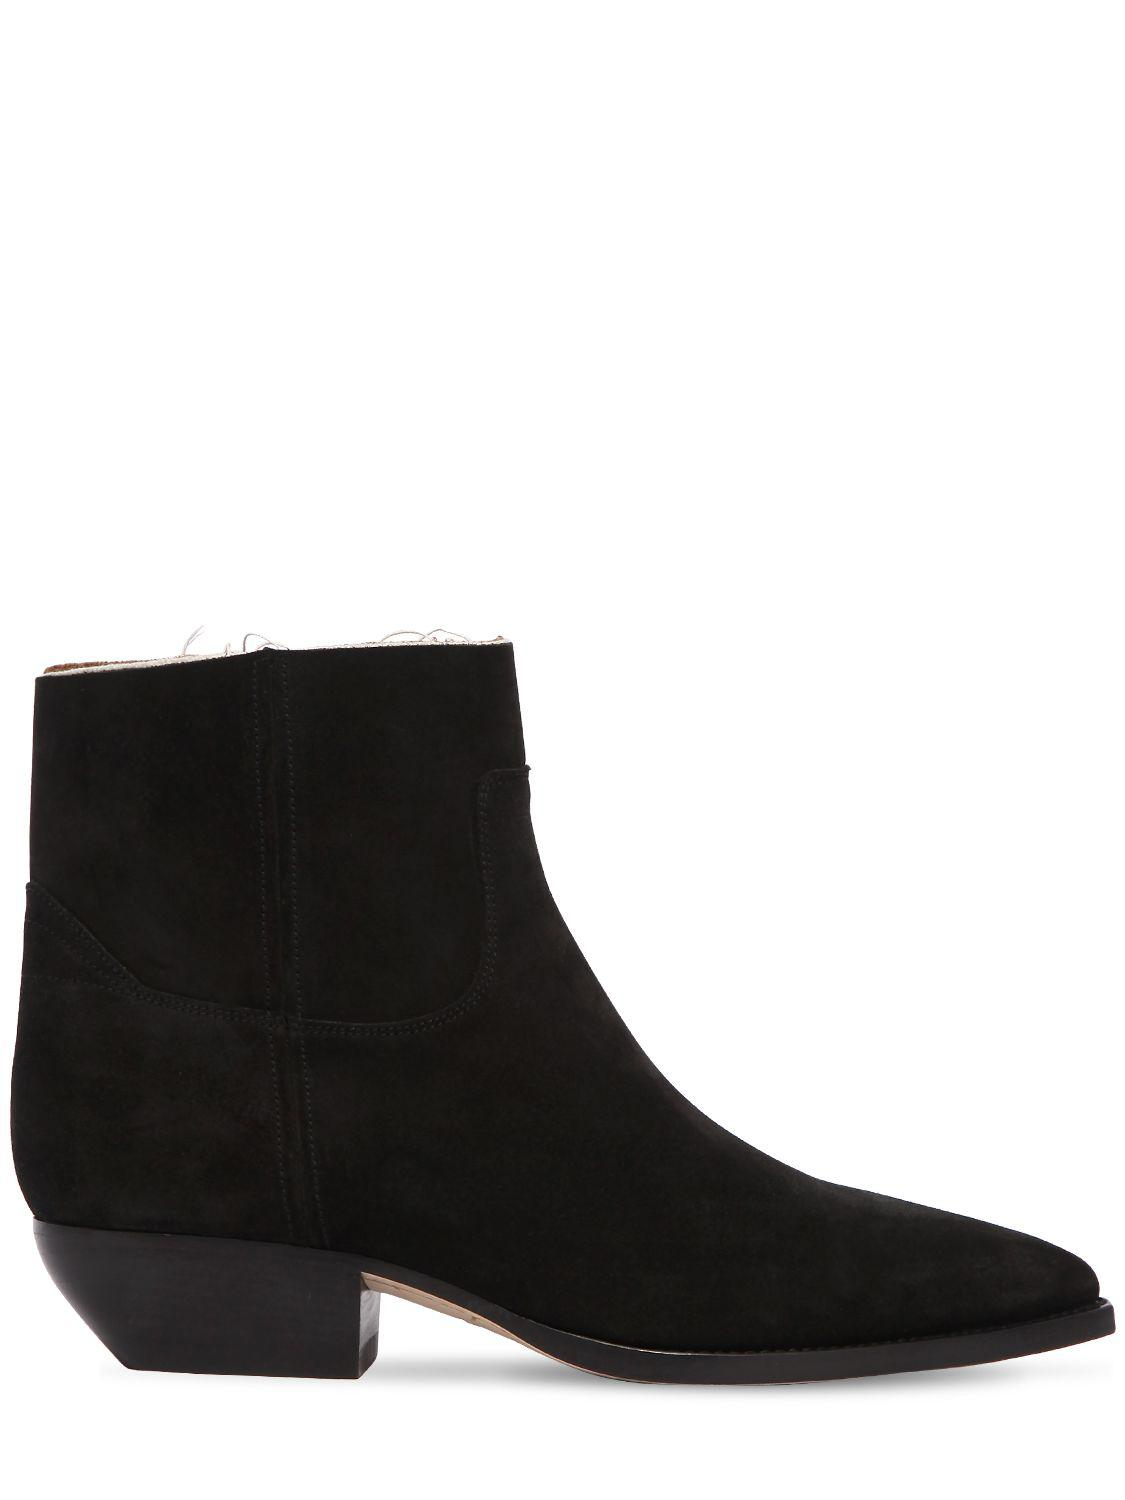 Saint Laurent Suede Theo Buckled Ankle Boots in . PAiiFrTYL4